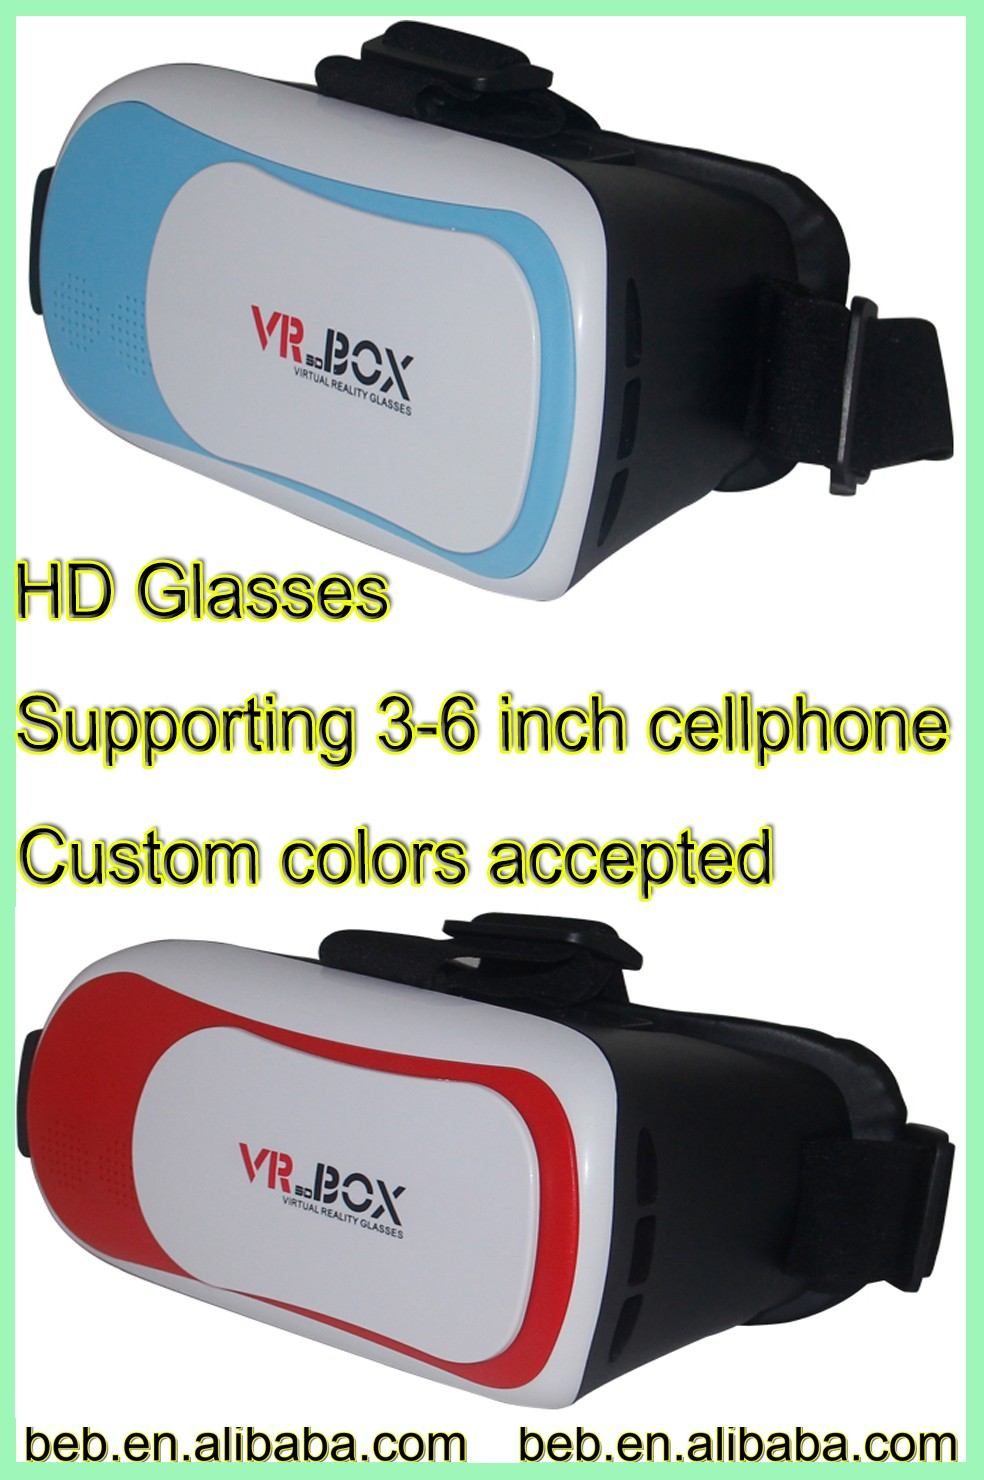 Low price high quality vr headset dropship from factory reliable manufacture vr headset